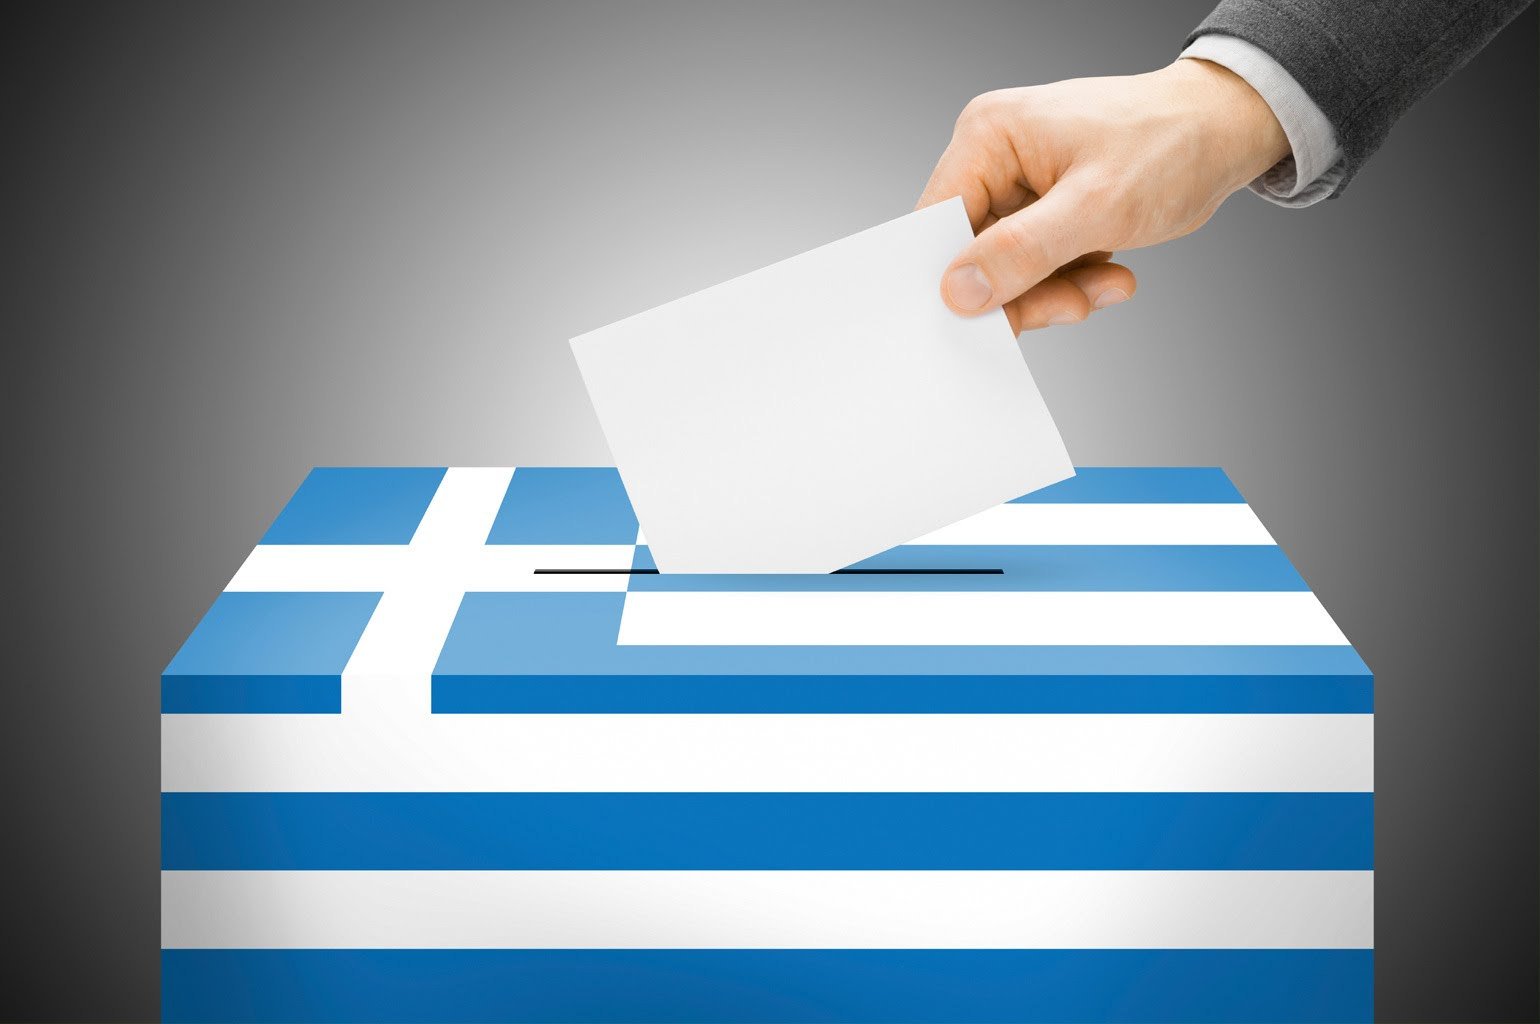 Greek Elections: January and September 2015